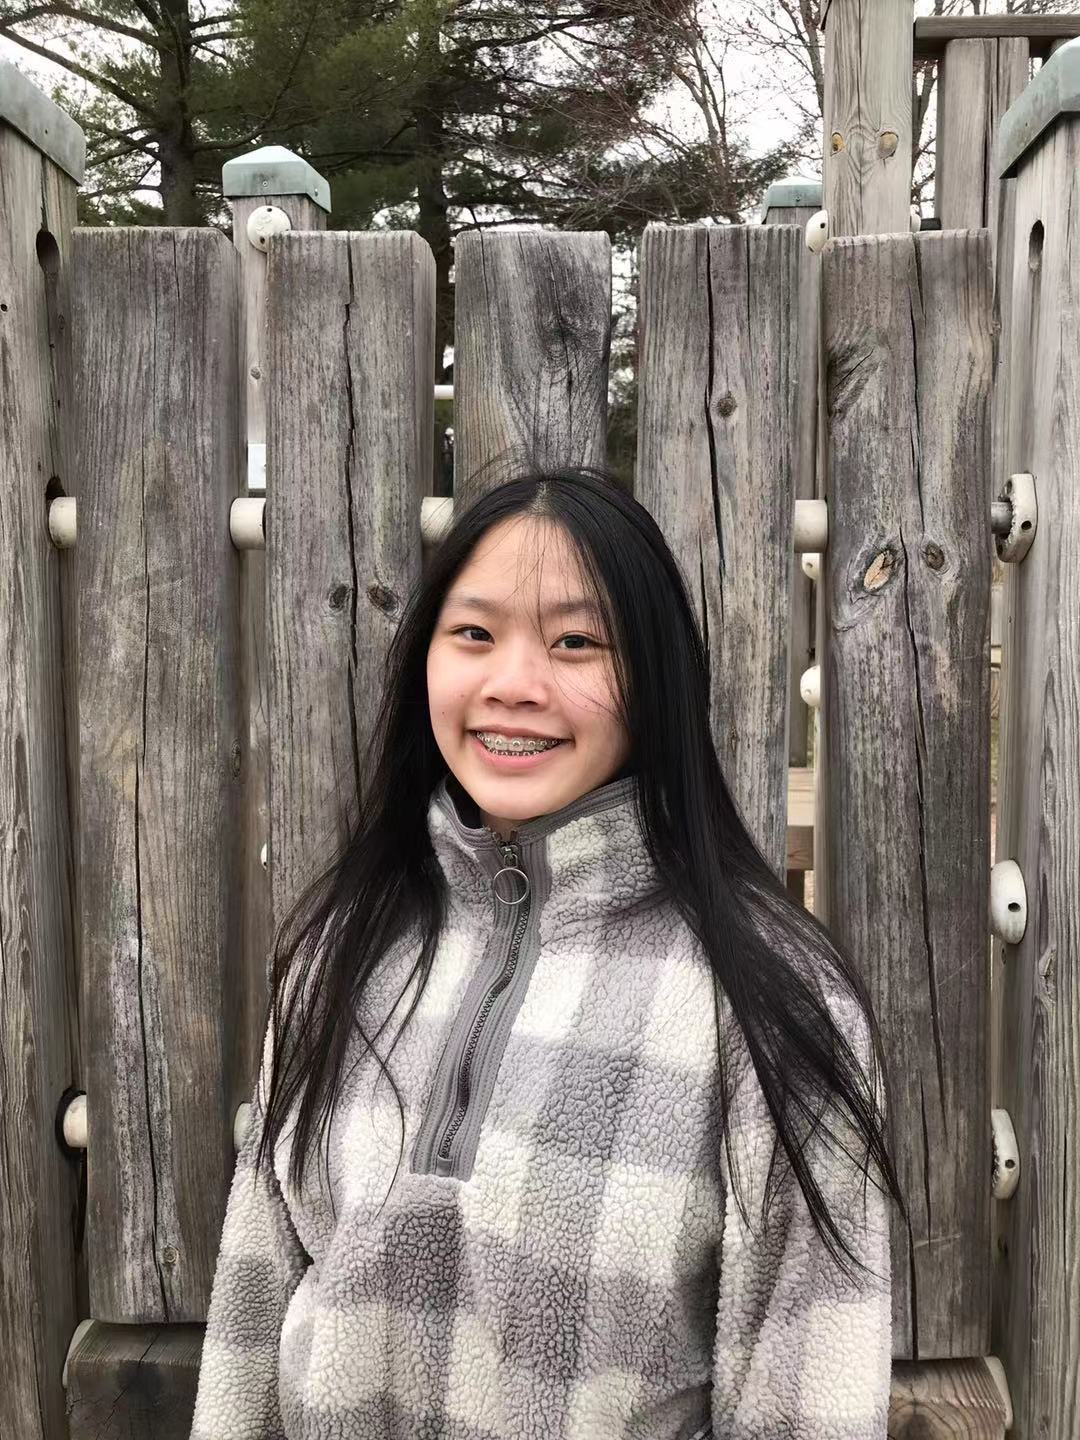 A person smiling in front of a wood fence  Description automatically generated with medium confidence